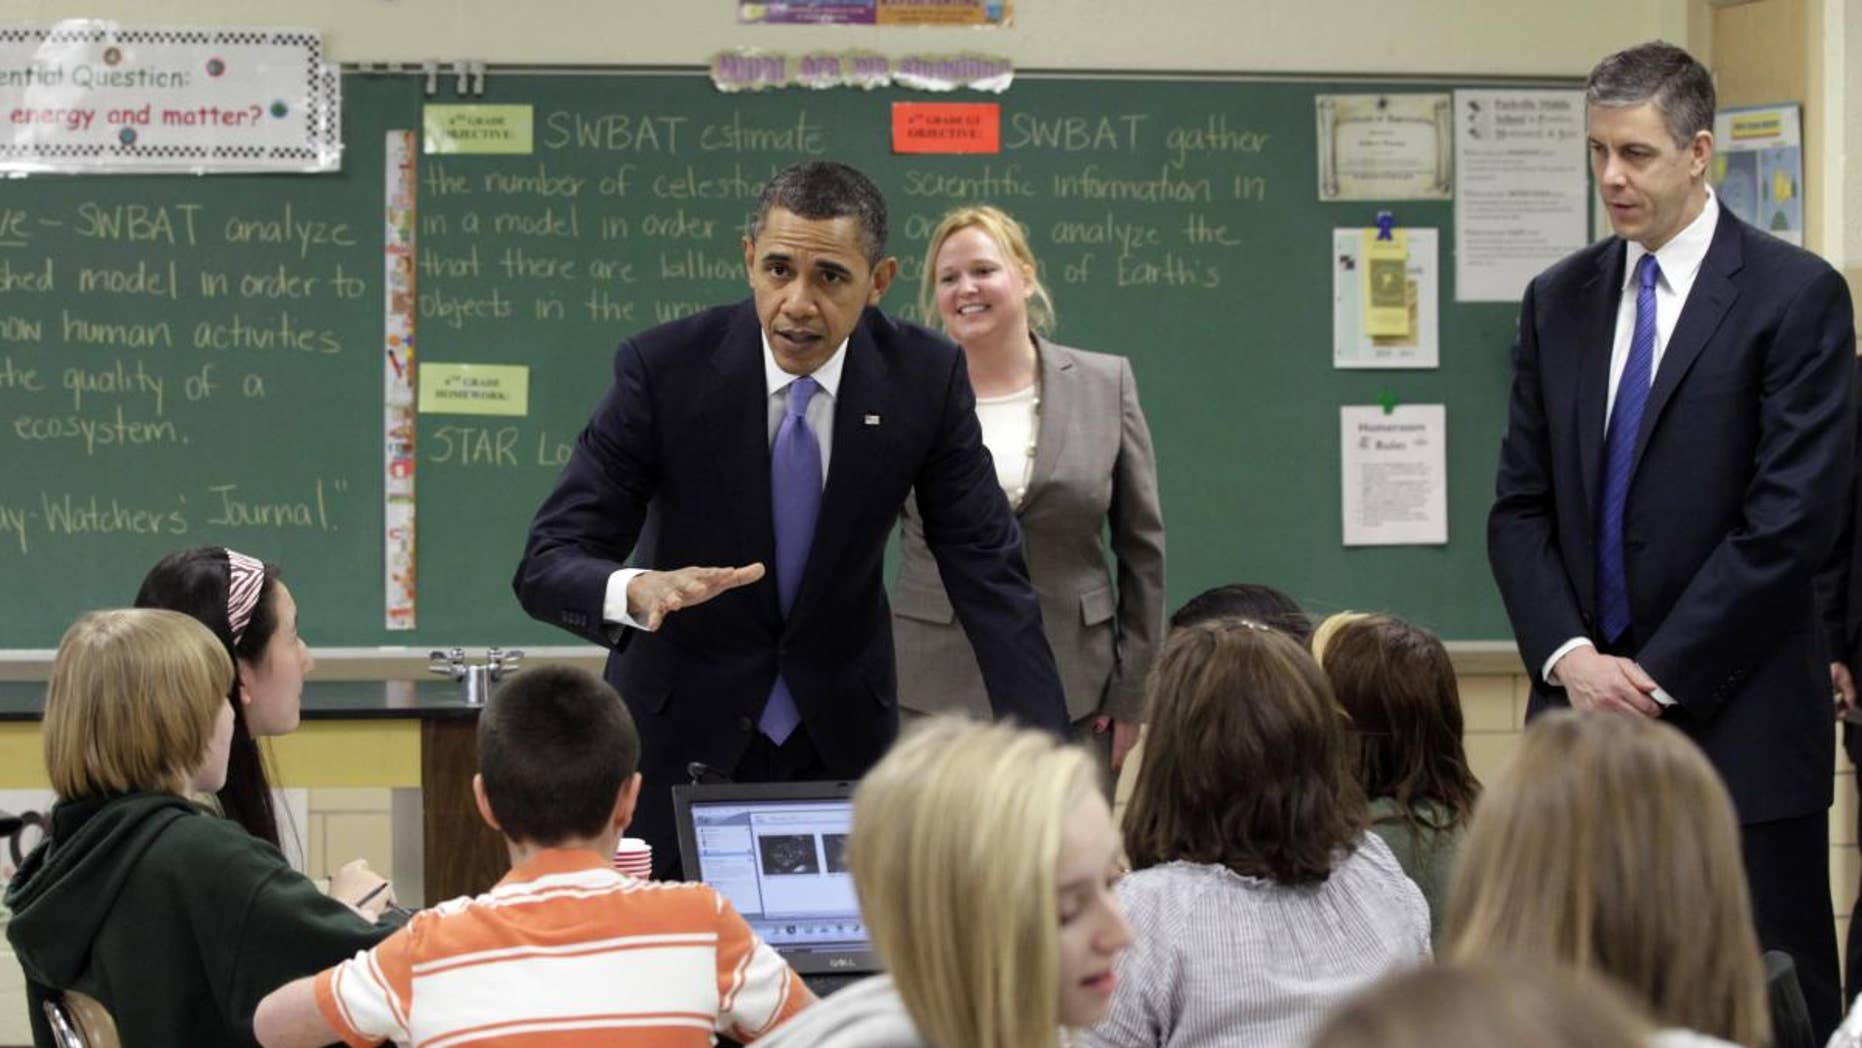 President Barack Obama, left, and U.S. Education Secretary Arne Duncan visit Susan Yoder's, center, science class at Parkville Middle School and Center of Technology, in Parkville, Md., Monday, Feb., 14, 2011. (AP Photo/Carolyn Kaster)